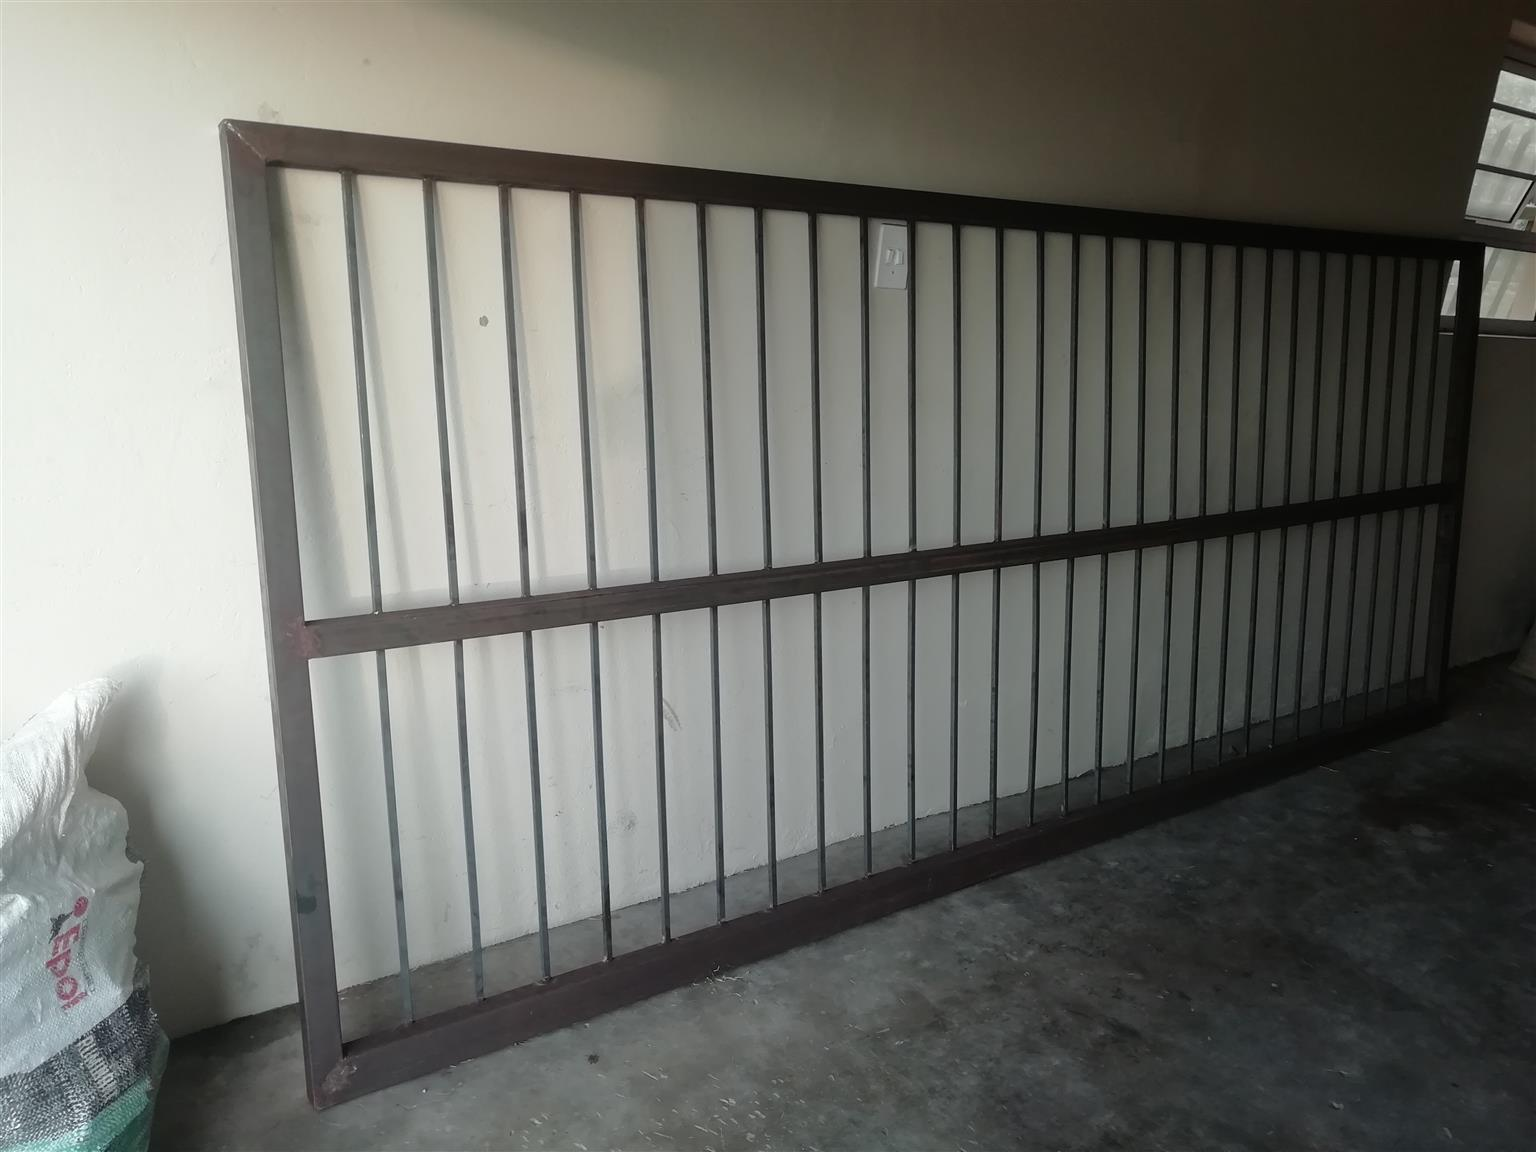 New gate 1,5 x 3m long